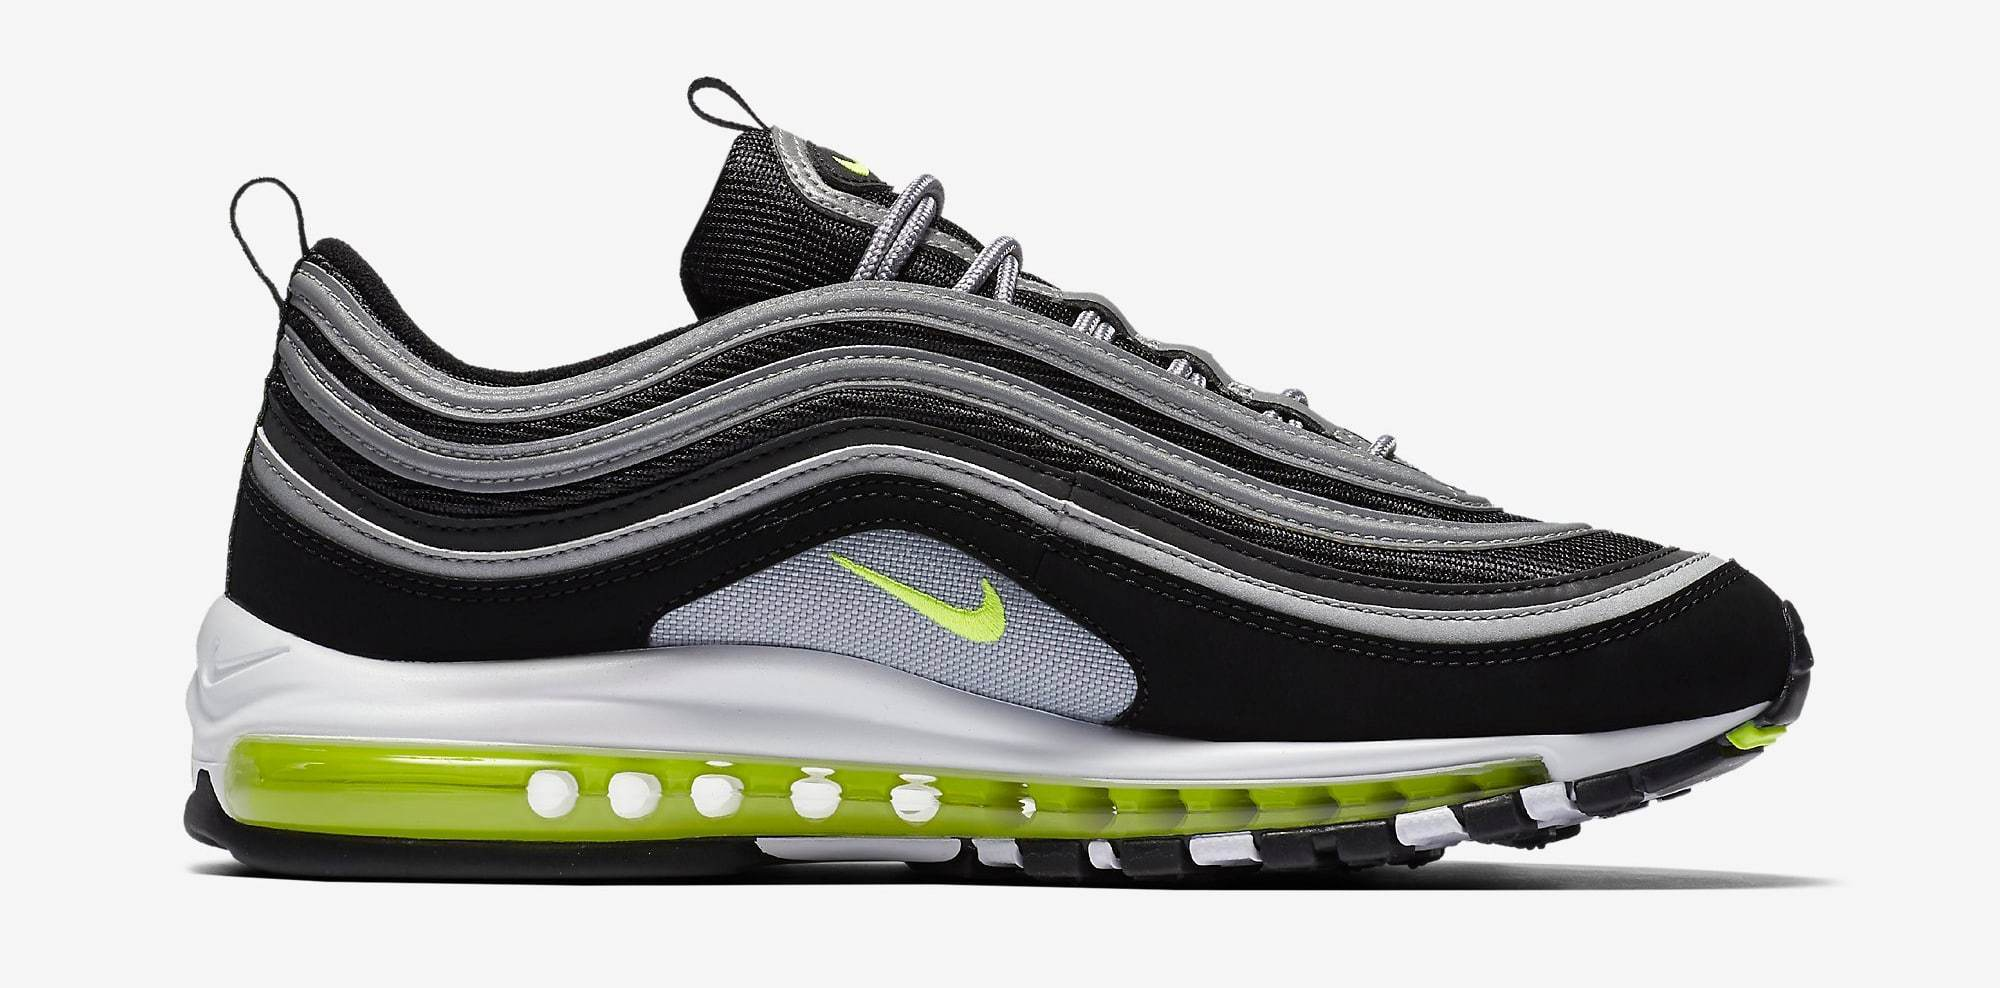 FW17 SUPREME NIKE AIR MAX 97 OG JAPAN NEON MEN'S 送料無料